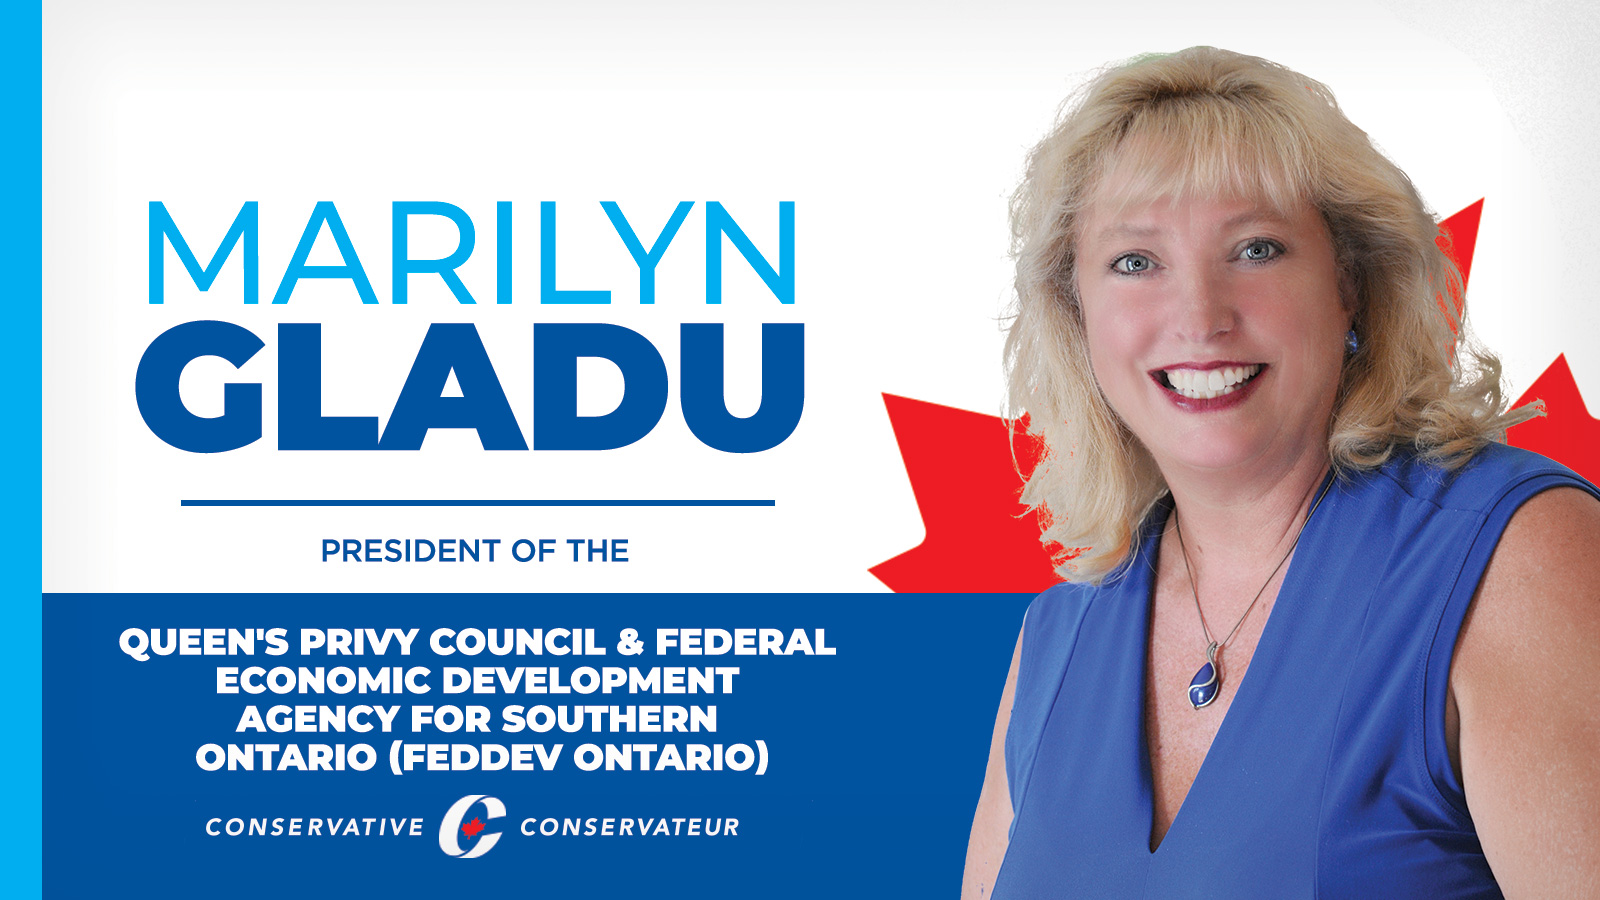 PRESS RELEASE: MP Marilyn Gladu named to the new Shadow Cabinet of the Conservative Party of Canada